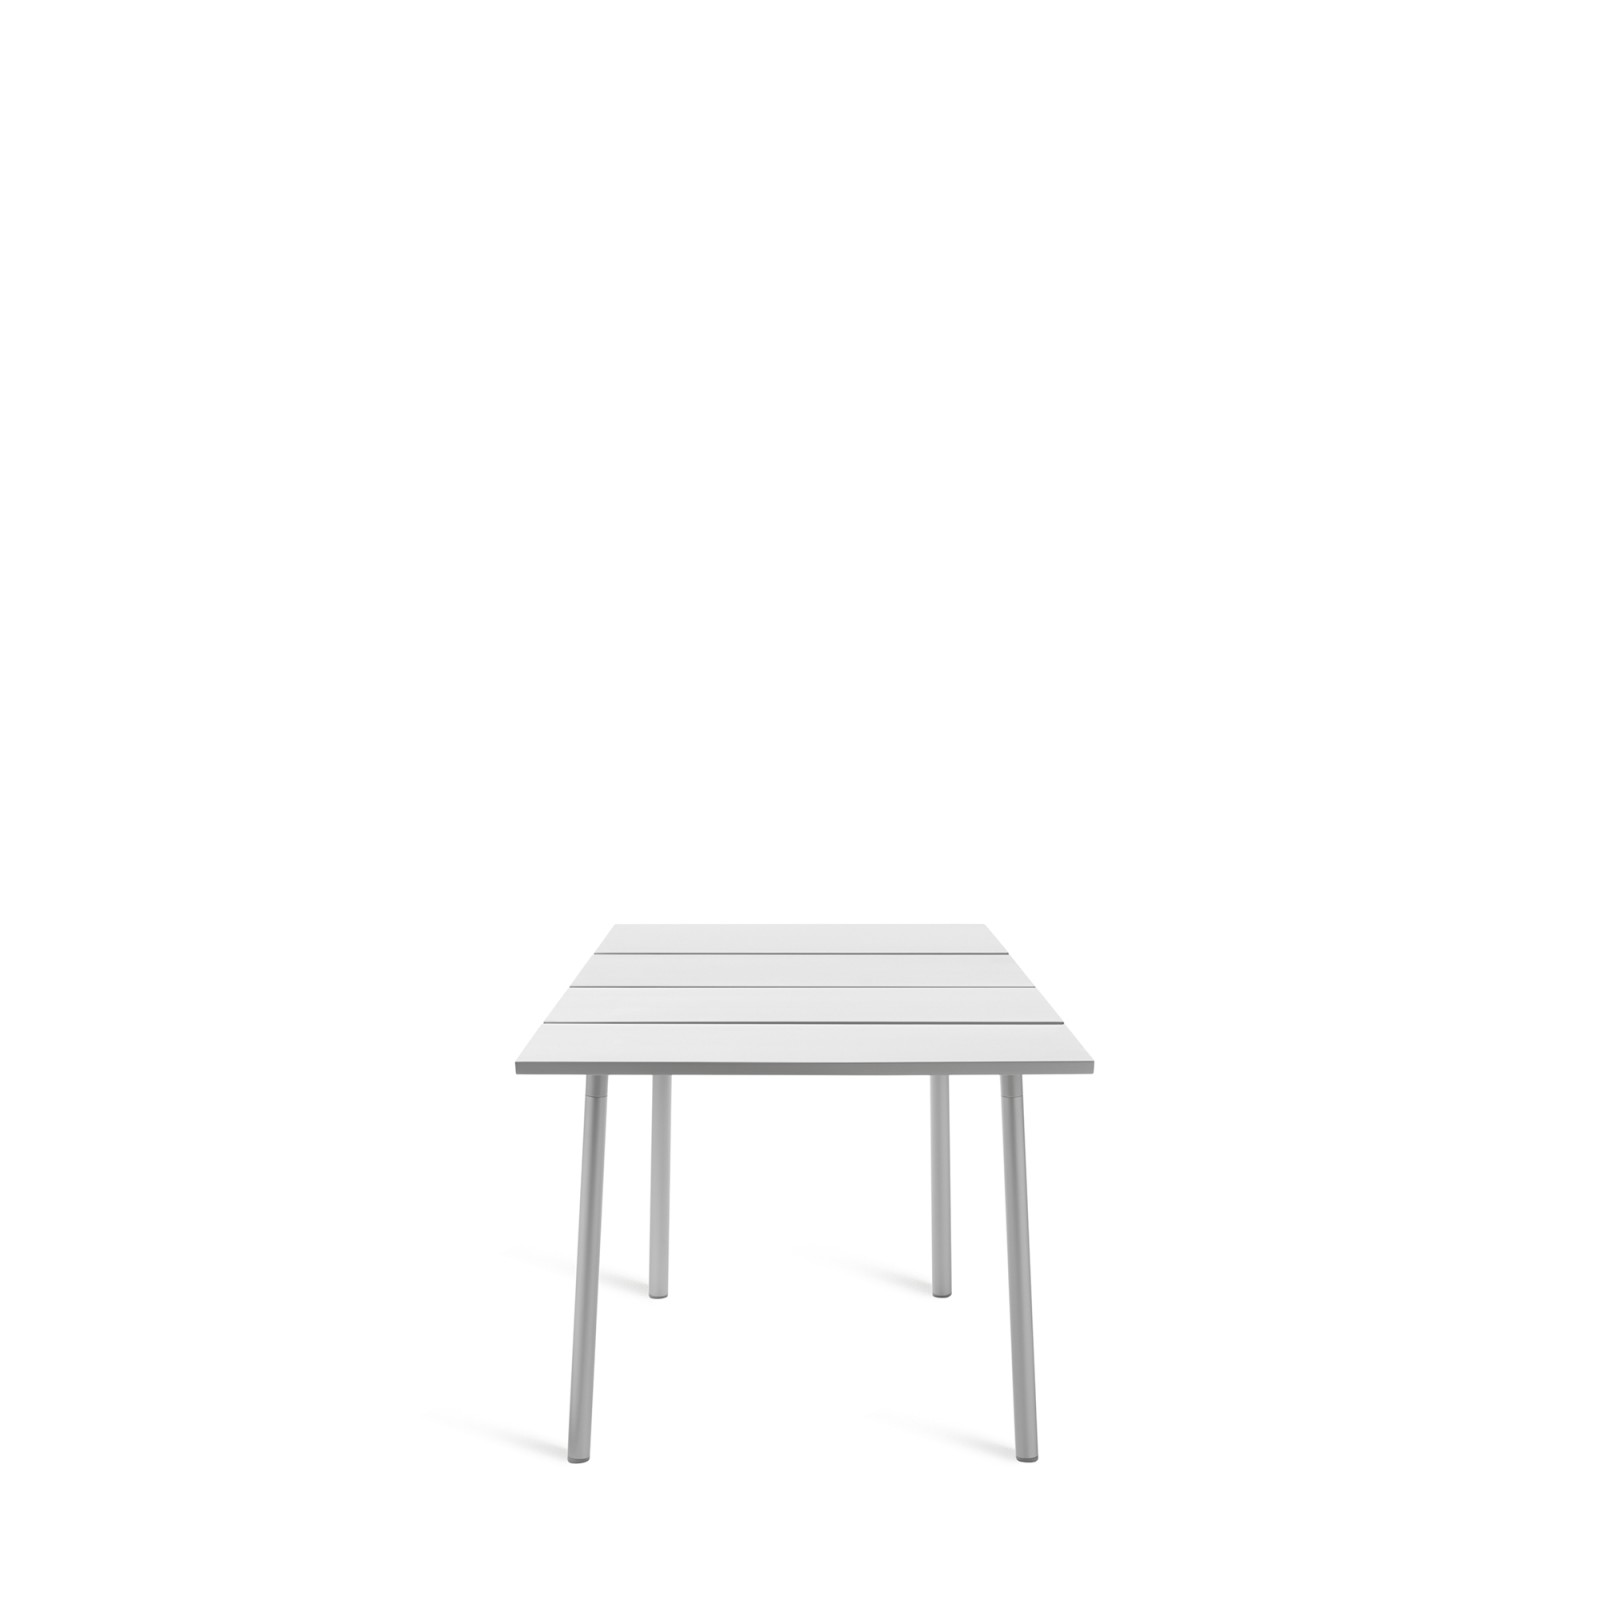 Run Dining Table 83cm, Aluminium, Aluminium Top